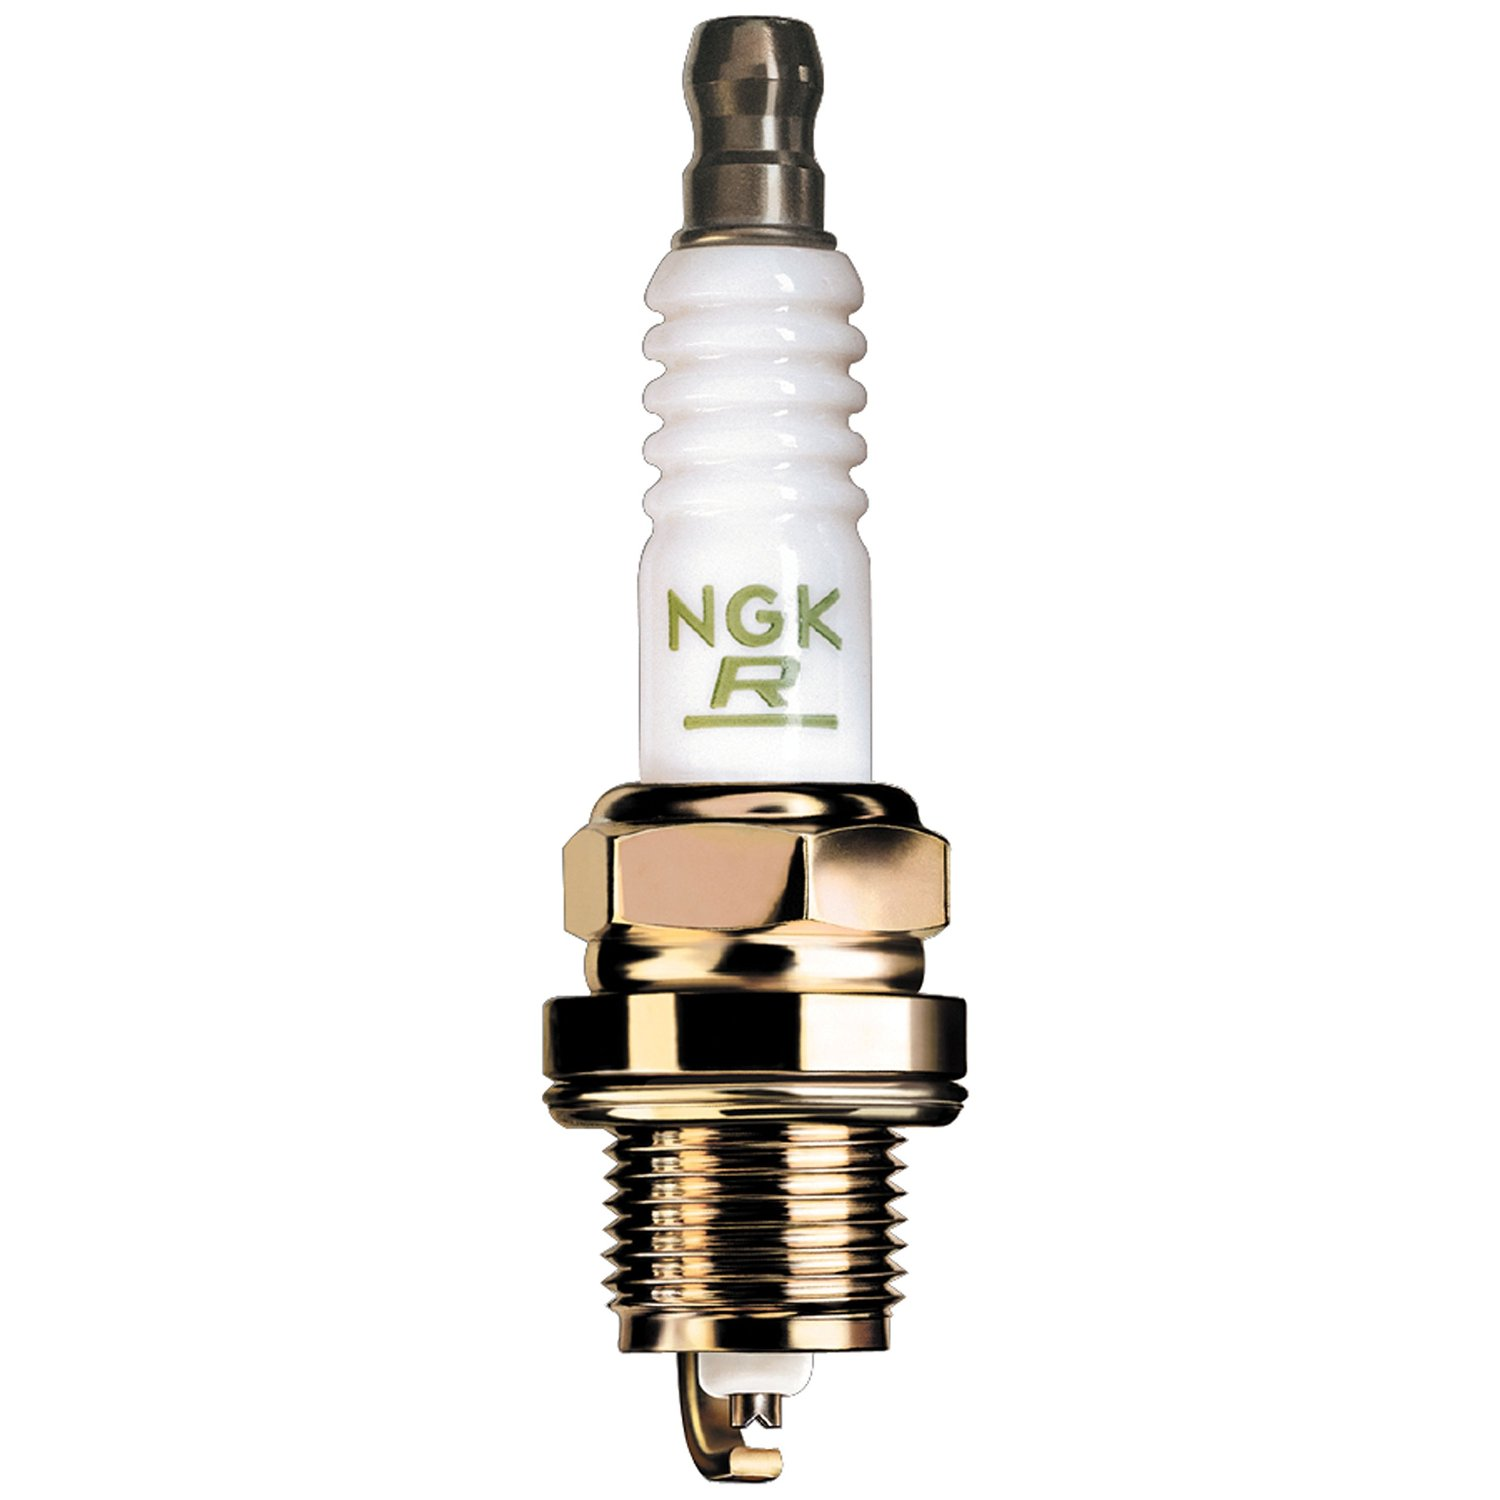 Get it delivered to your door - NGK BPR5ES Standard Spark Plug, Pack of 1 - 25 (EGP)